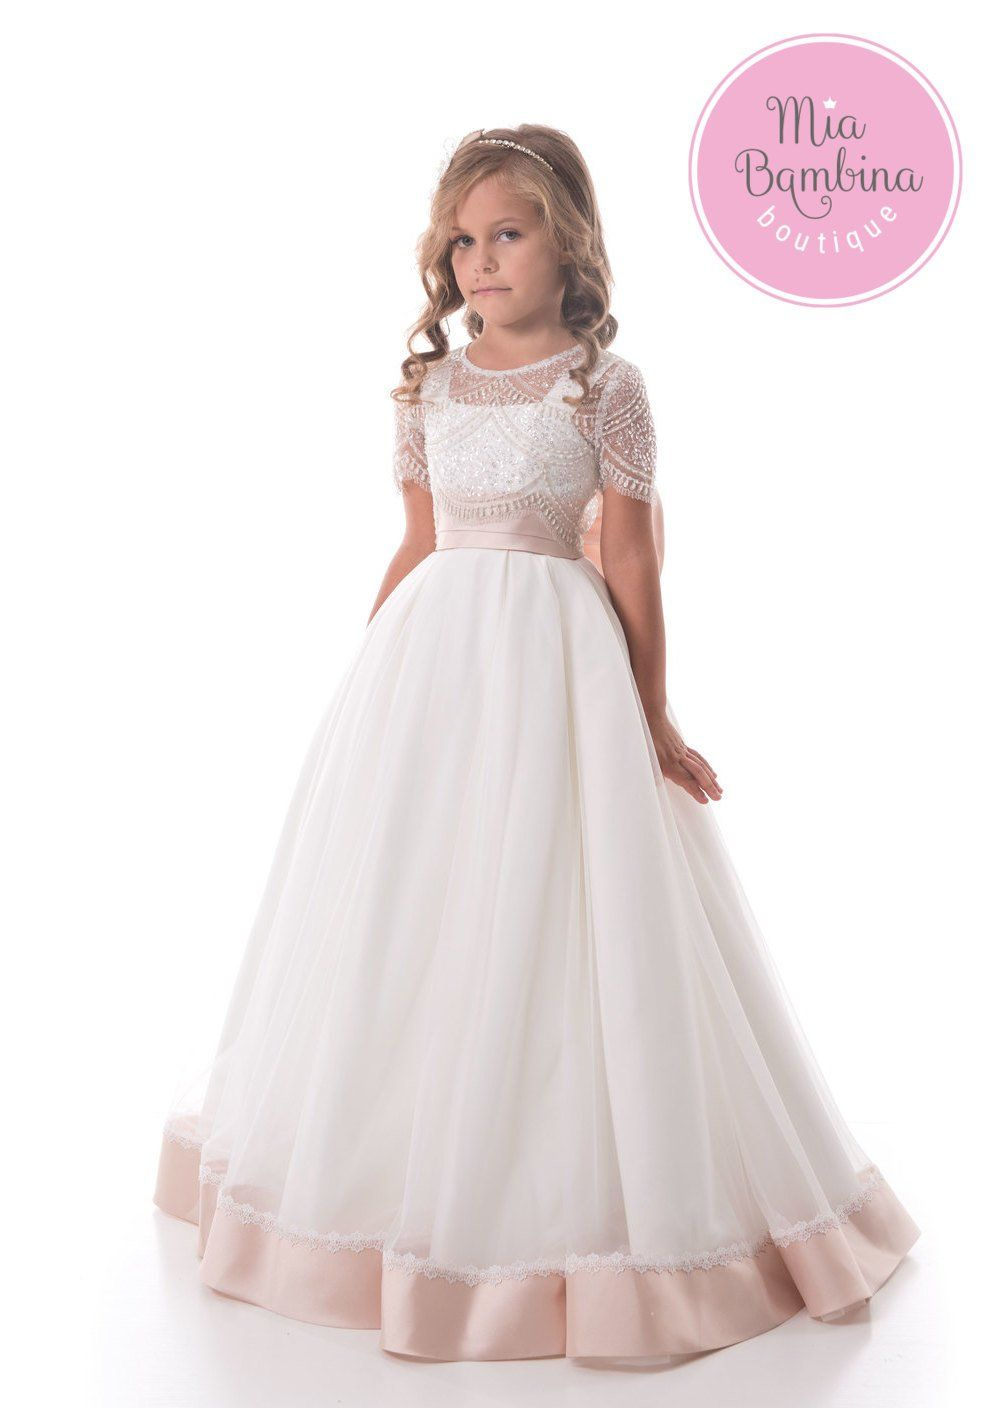 35258915cb6 A beautiful princess dress for flower girls from 3 year to 14 years old.  The tulle lace gown features a lace overlay bodice